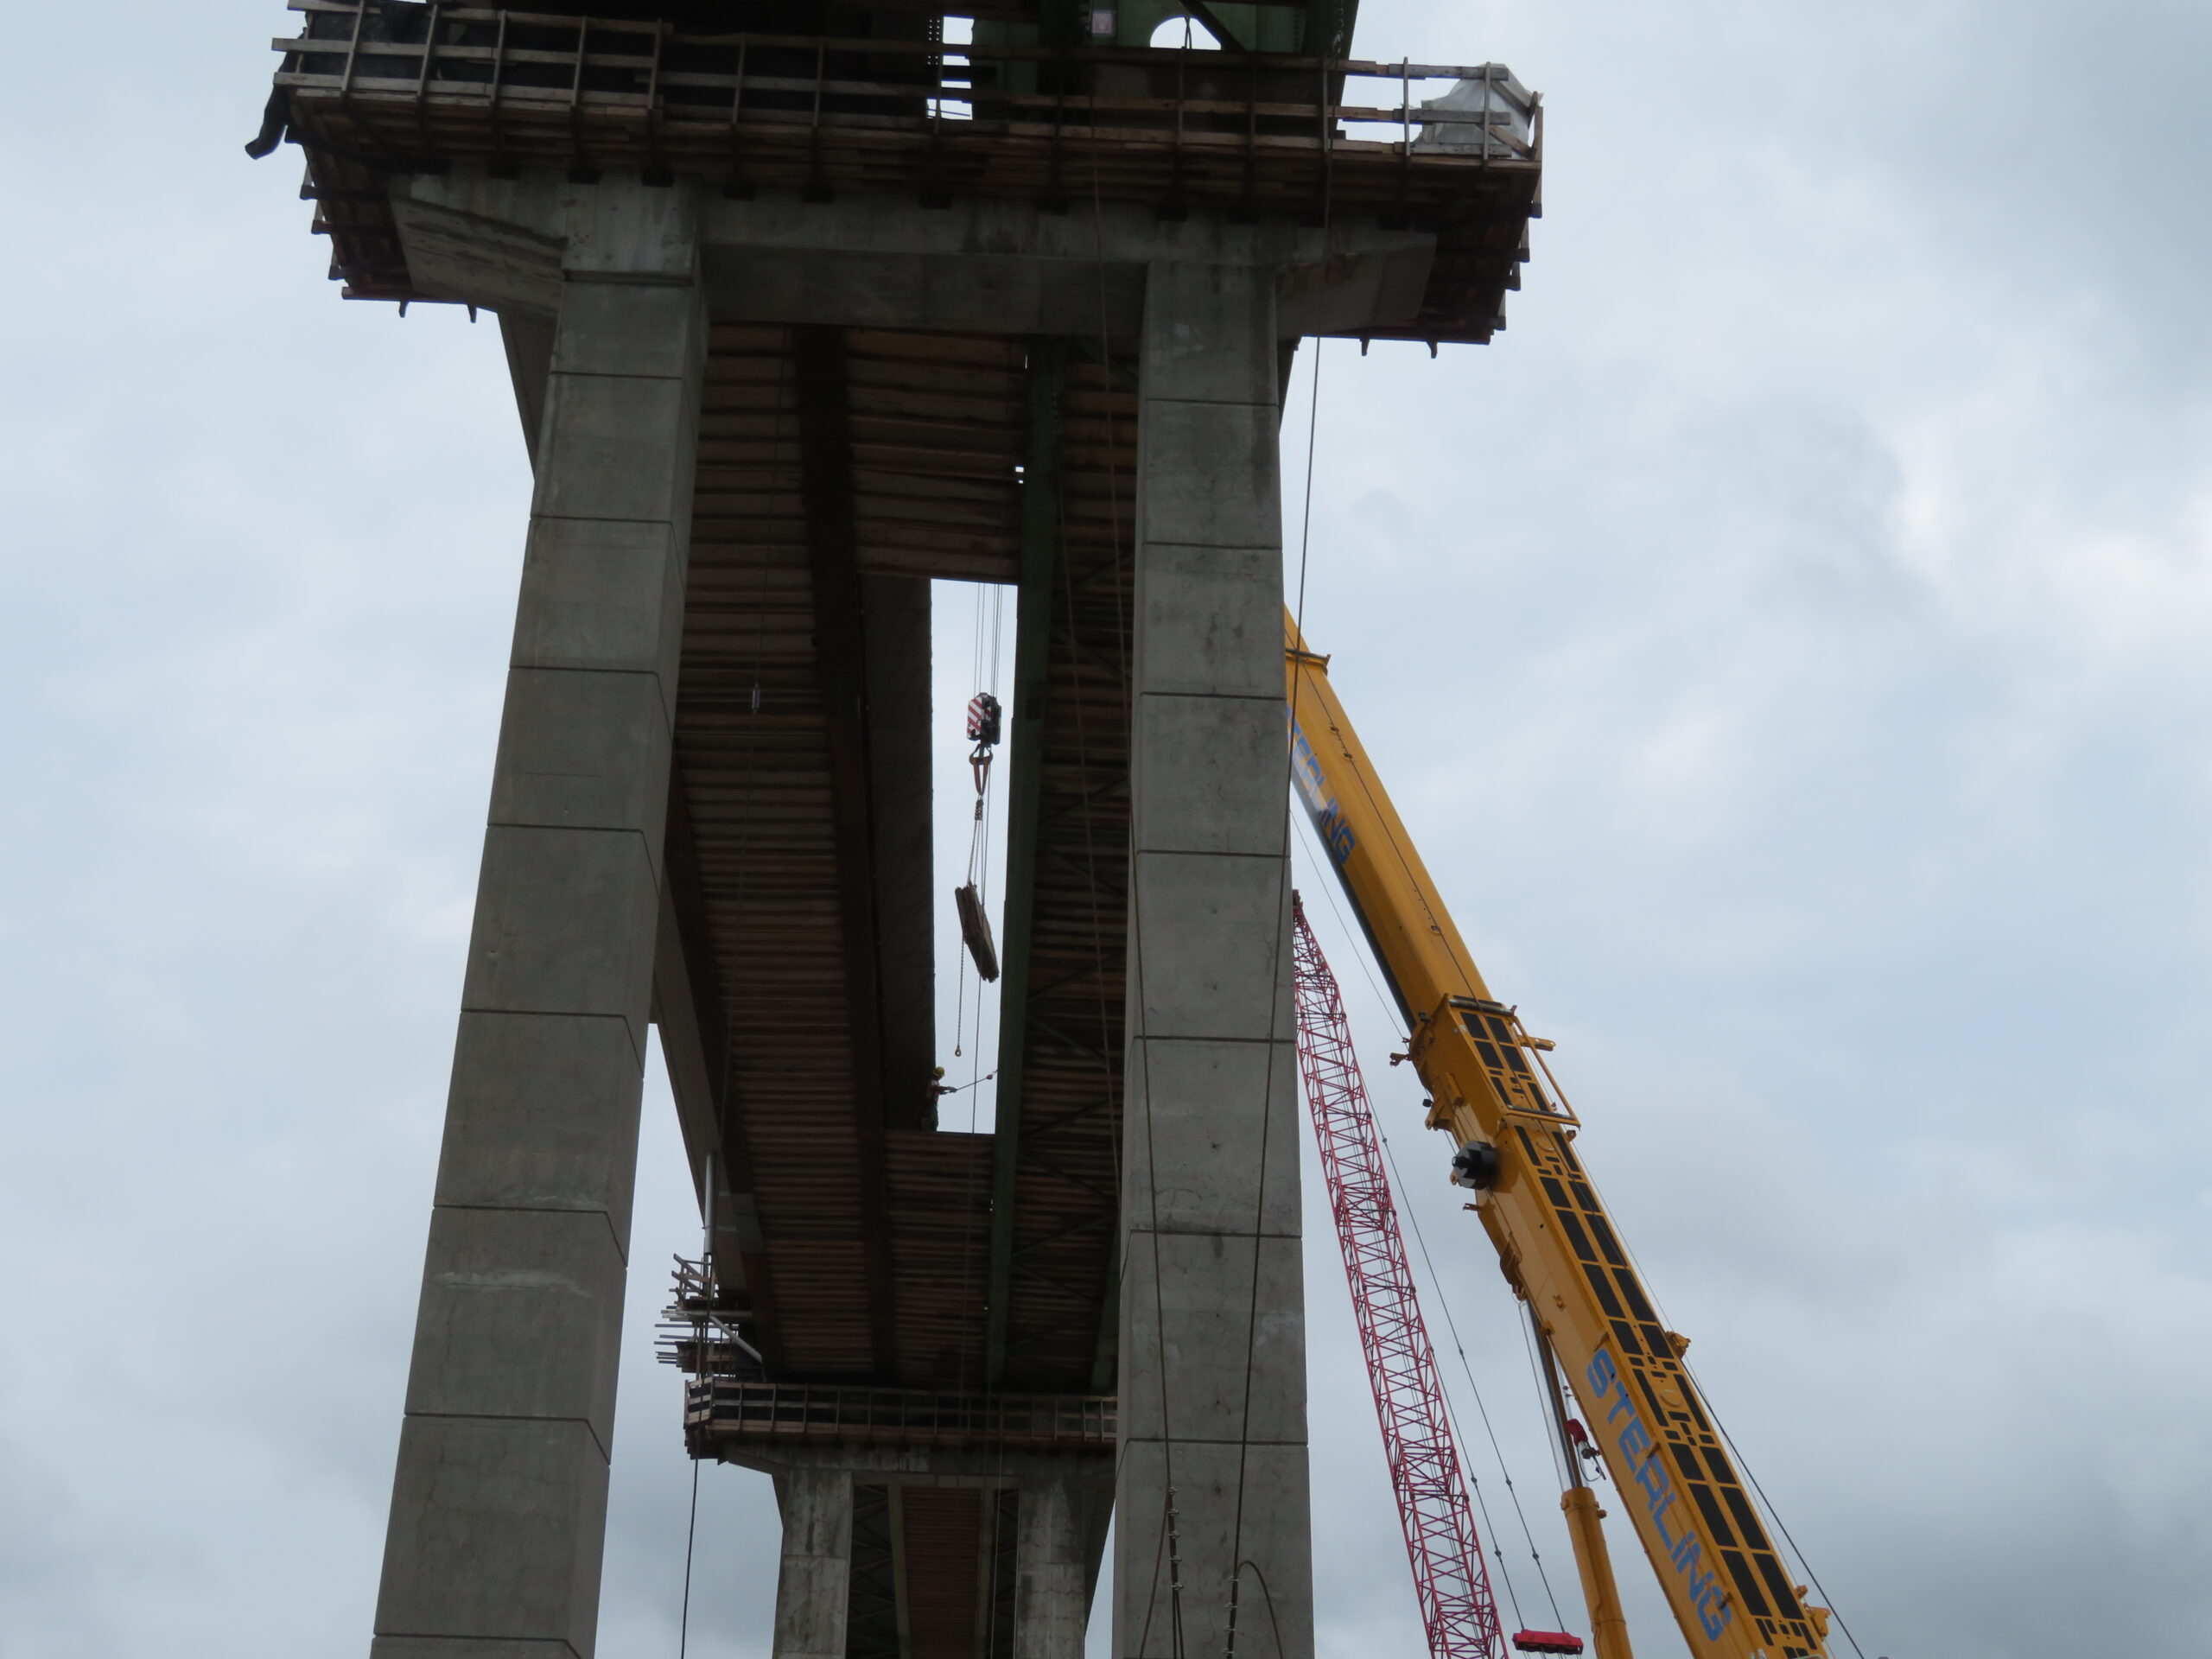 300-ton crane removing the wood from the false decking